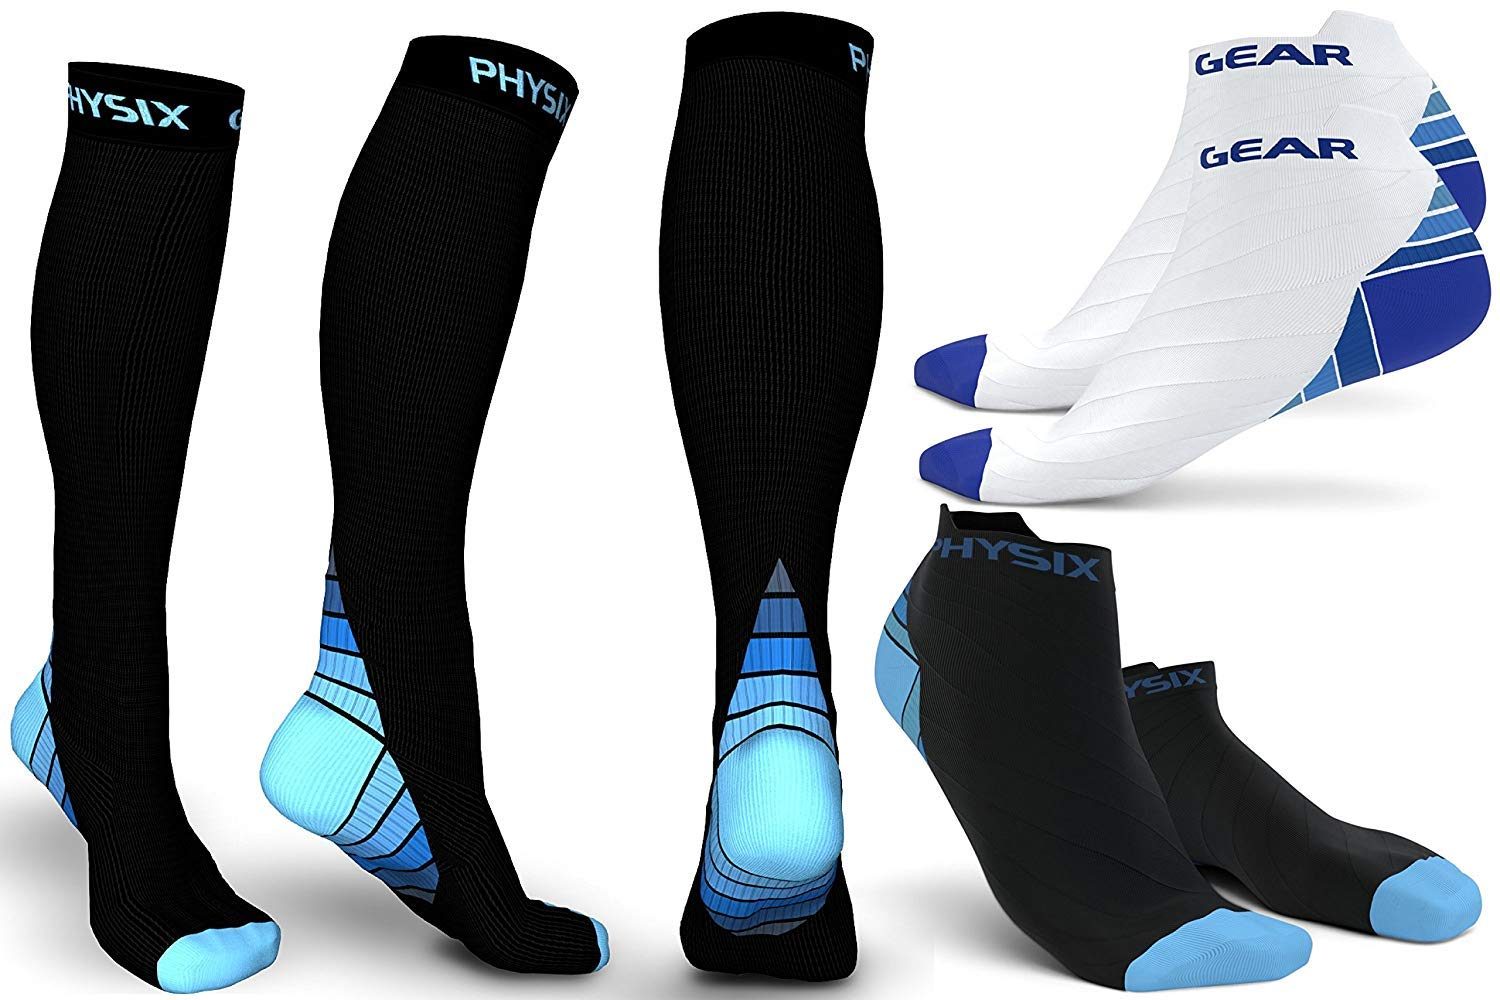 3 Pack Compression Socks for Men & Women 20-30 mmhg, Best Graduated Athletic Fit for Running Nurses Shin Splints Flight Travel & Maternity Pregnancy - Boost Stamina Circulation & Recovery BLU LXL by Physix Gear Sport (Image #1)